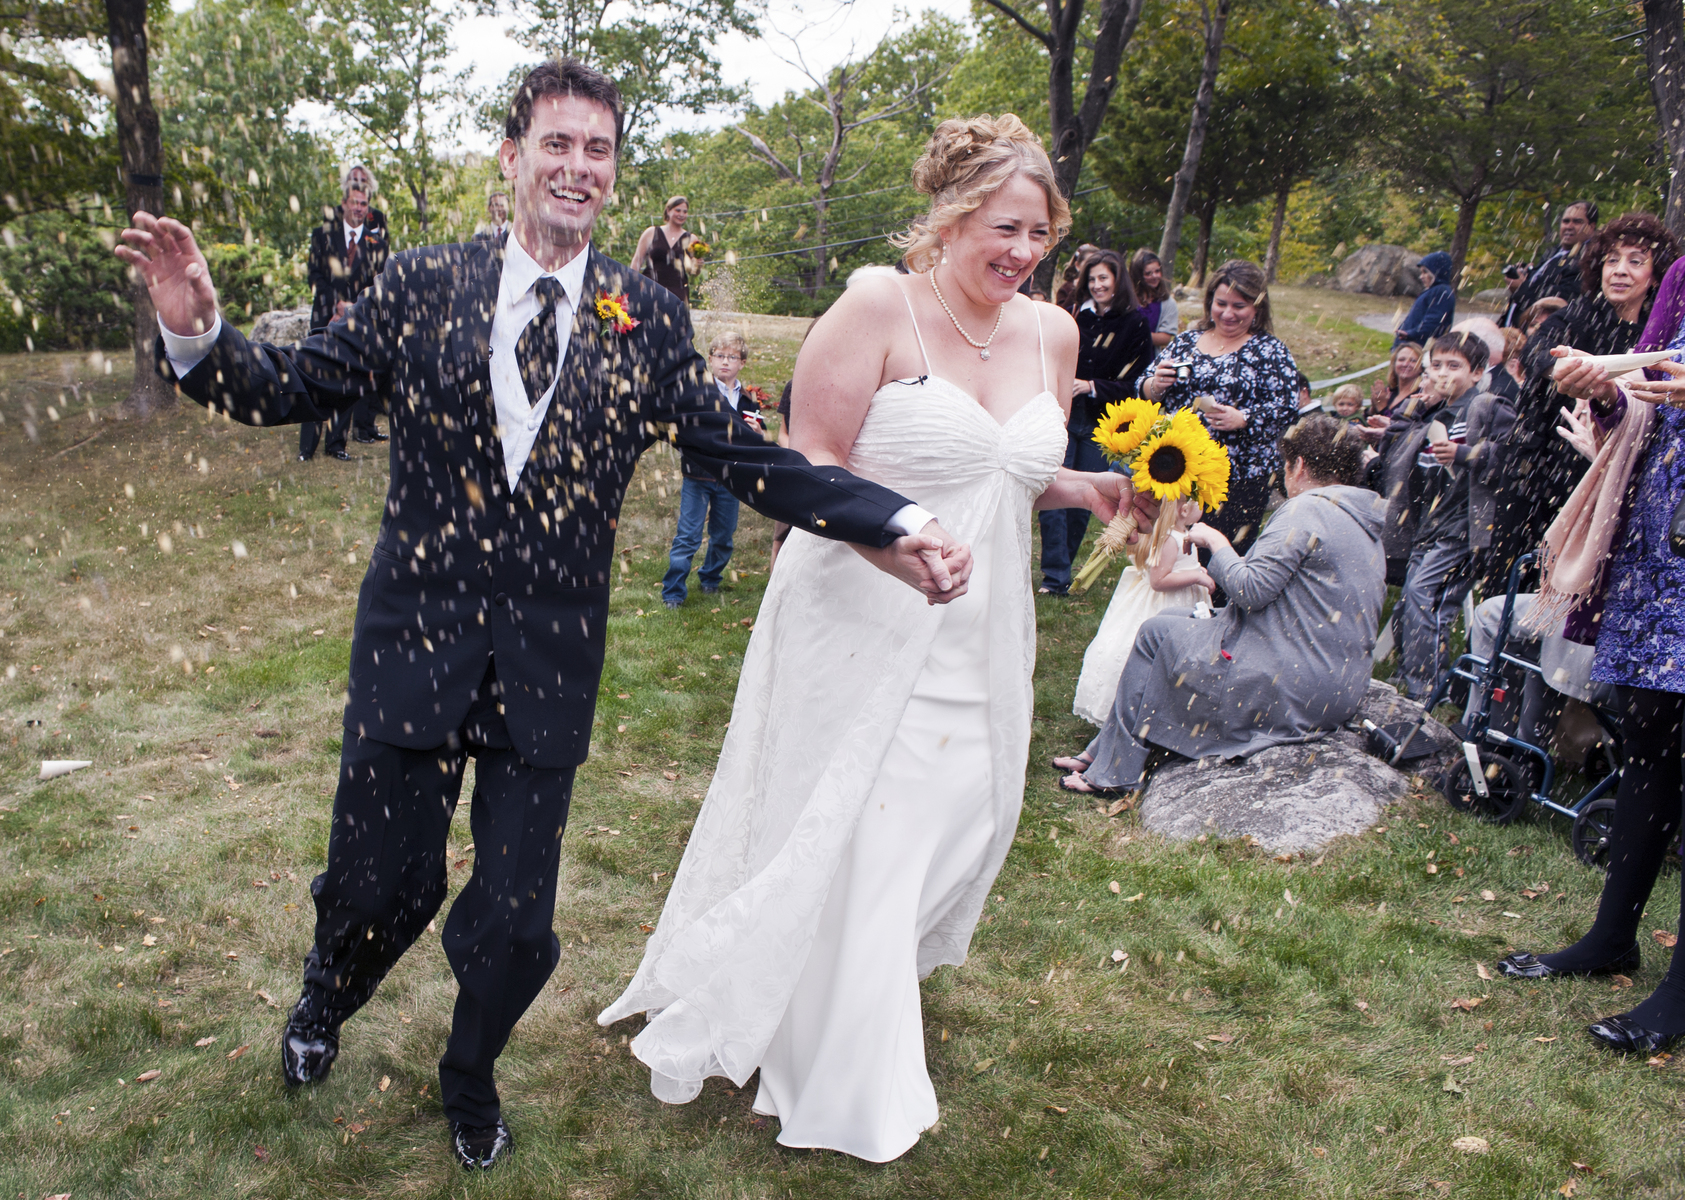 © Susan Farley Photography Wedding s : Weddings : SUSAN FARLEY,  NYC FREELANCE PHOTOGRAPHER, New York and WESTCHESTER,NY FREELANCE PHOTOJOURNALIST IS AN AWARD-WINNING PHOTOJOURNALIST IN NEW YORK CITY & WESTCHESTER COUNTY FREELANCE PORTRAITS AND EVENTS PHOTOGRAPHER